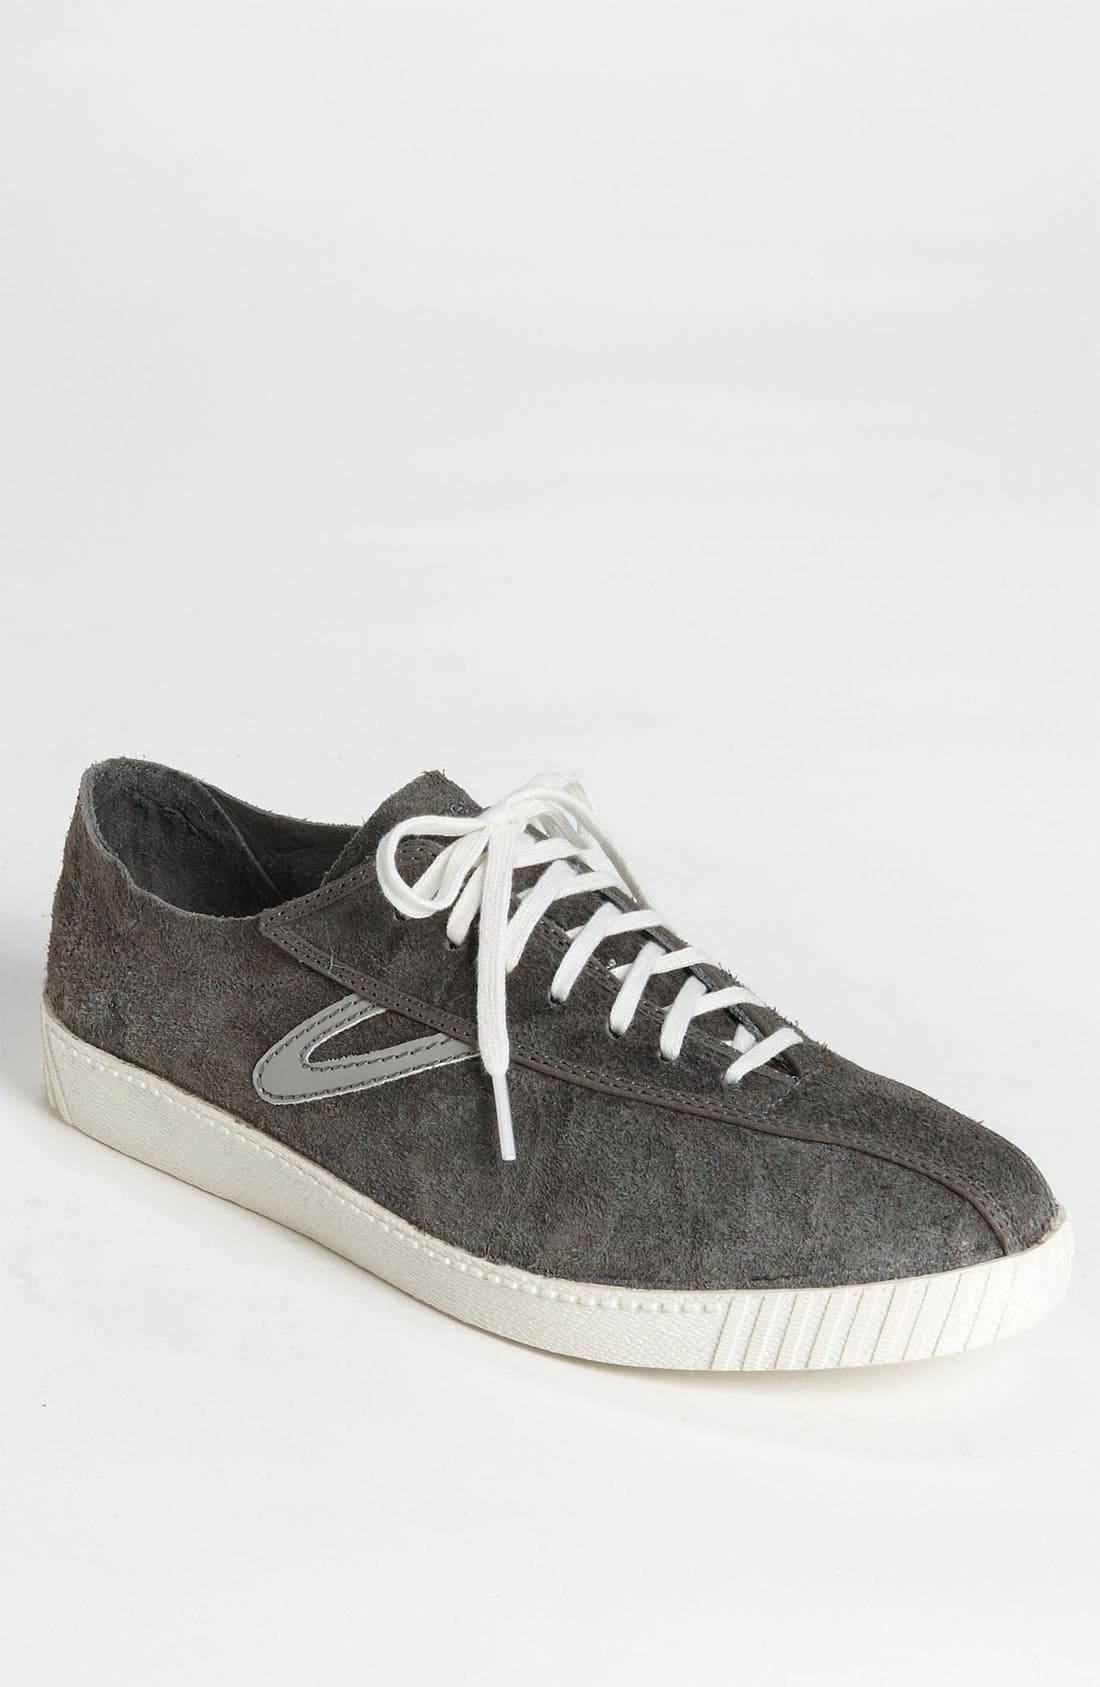 Main Image - Tretorn 'Nylite' Reverse Leather Sneaker